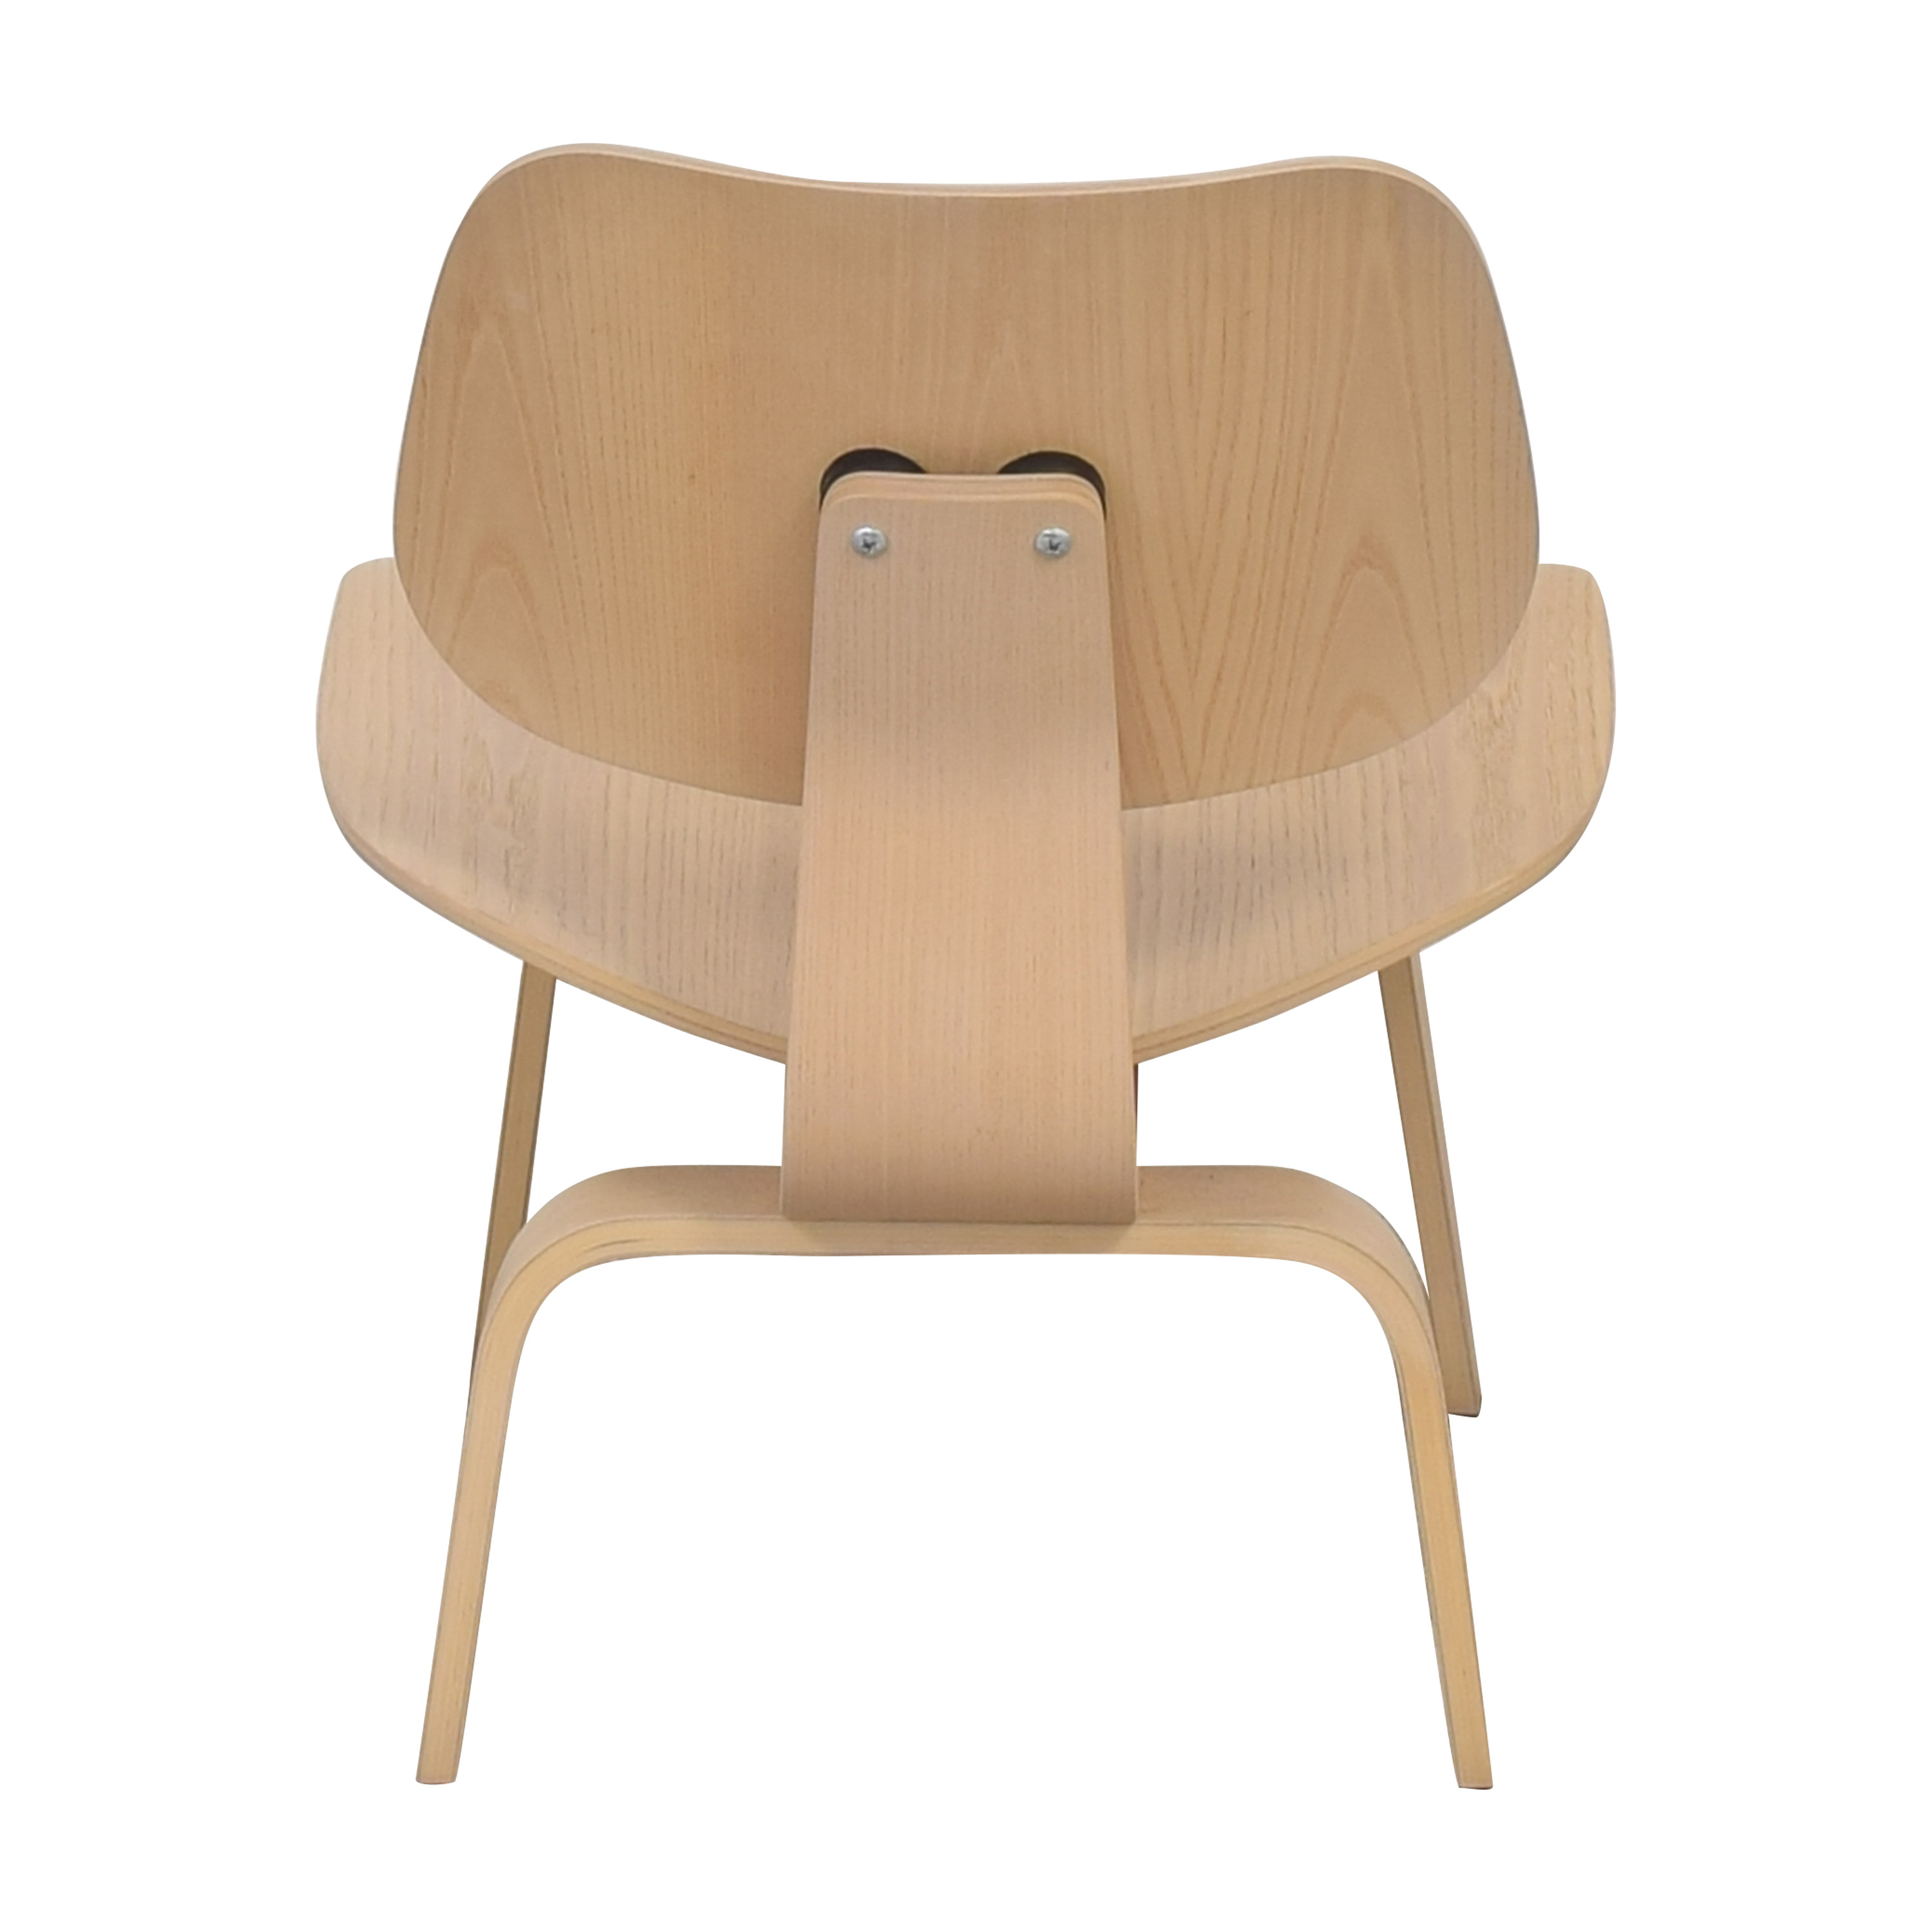 Herman Miller Herman Miller Eames Office Molded Plywood Lounge Chair ma